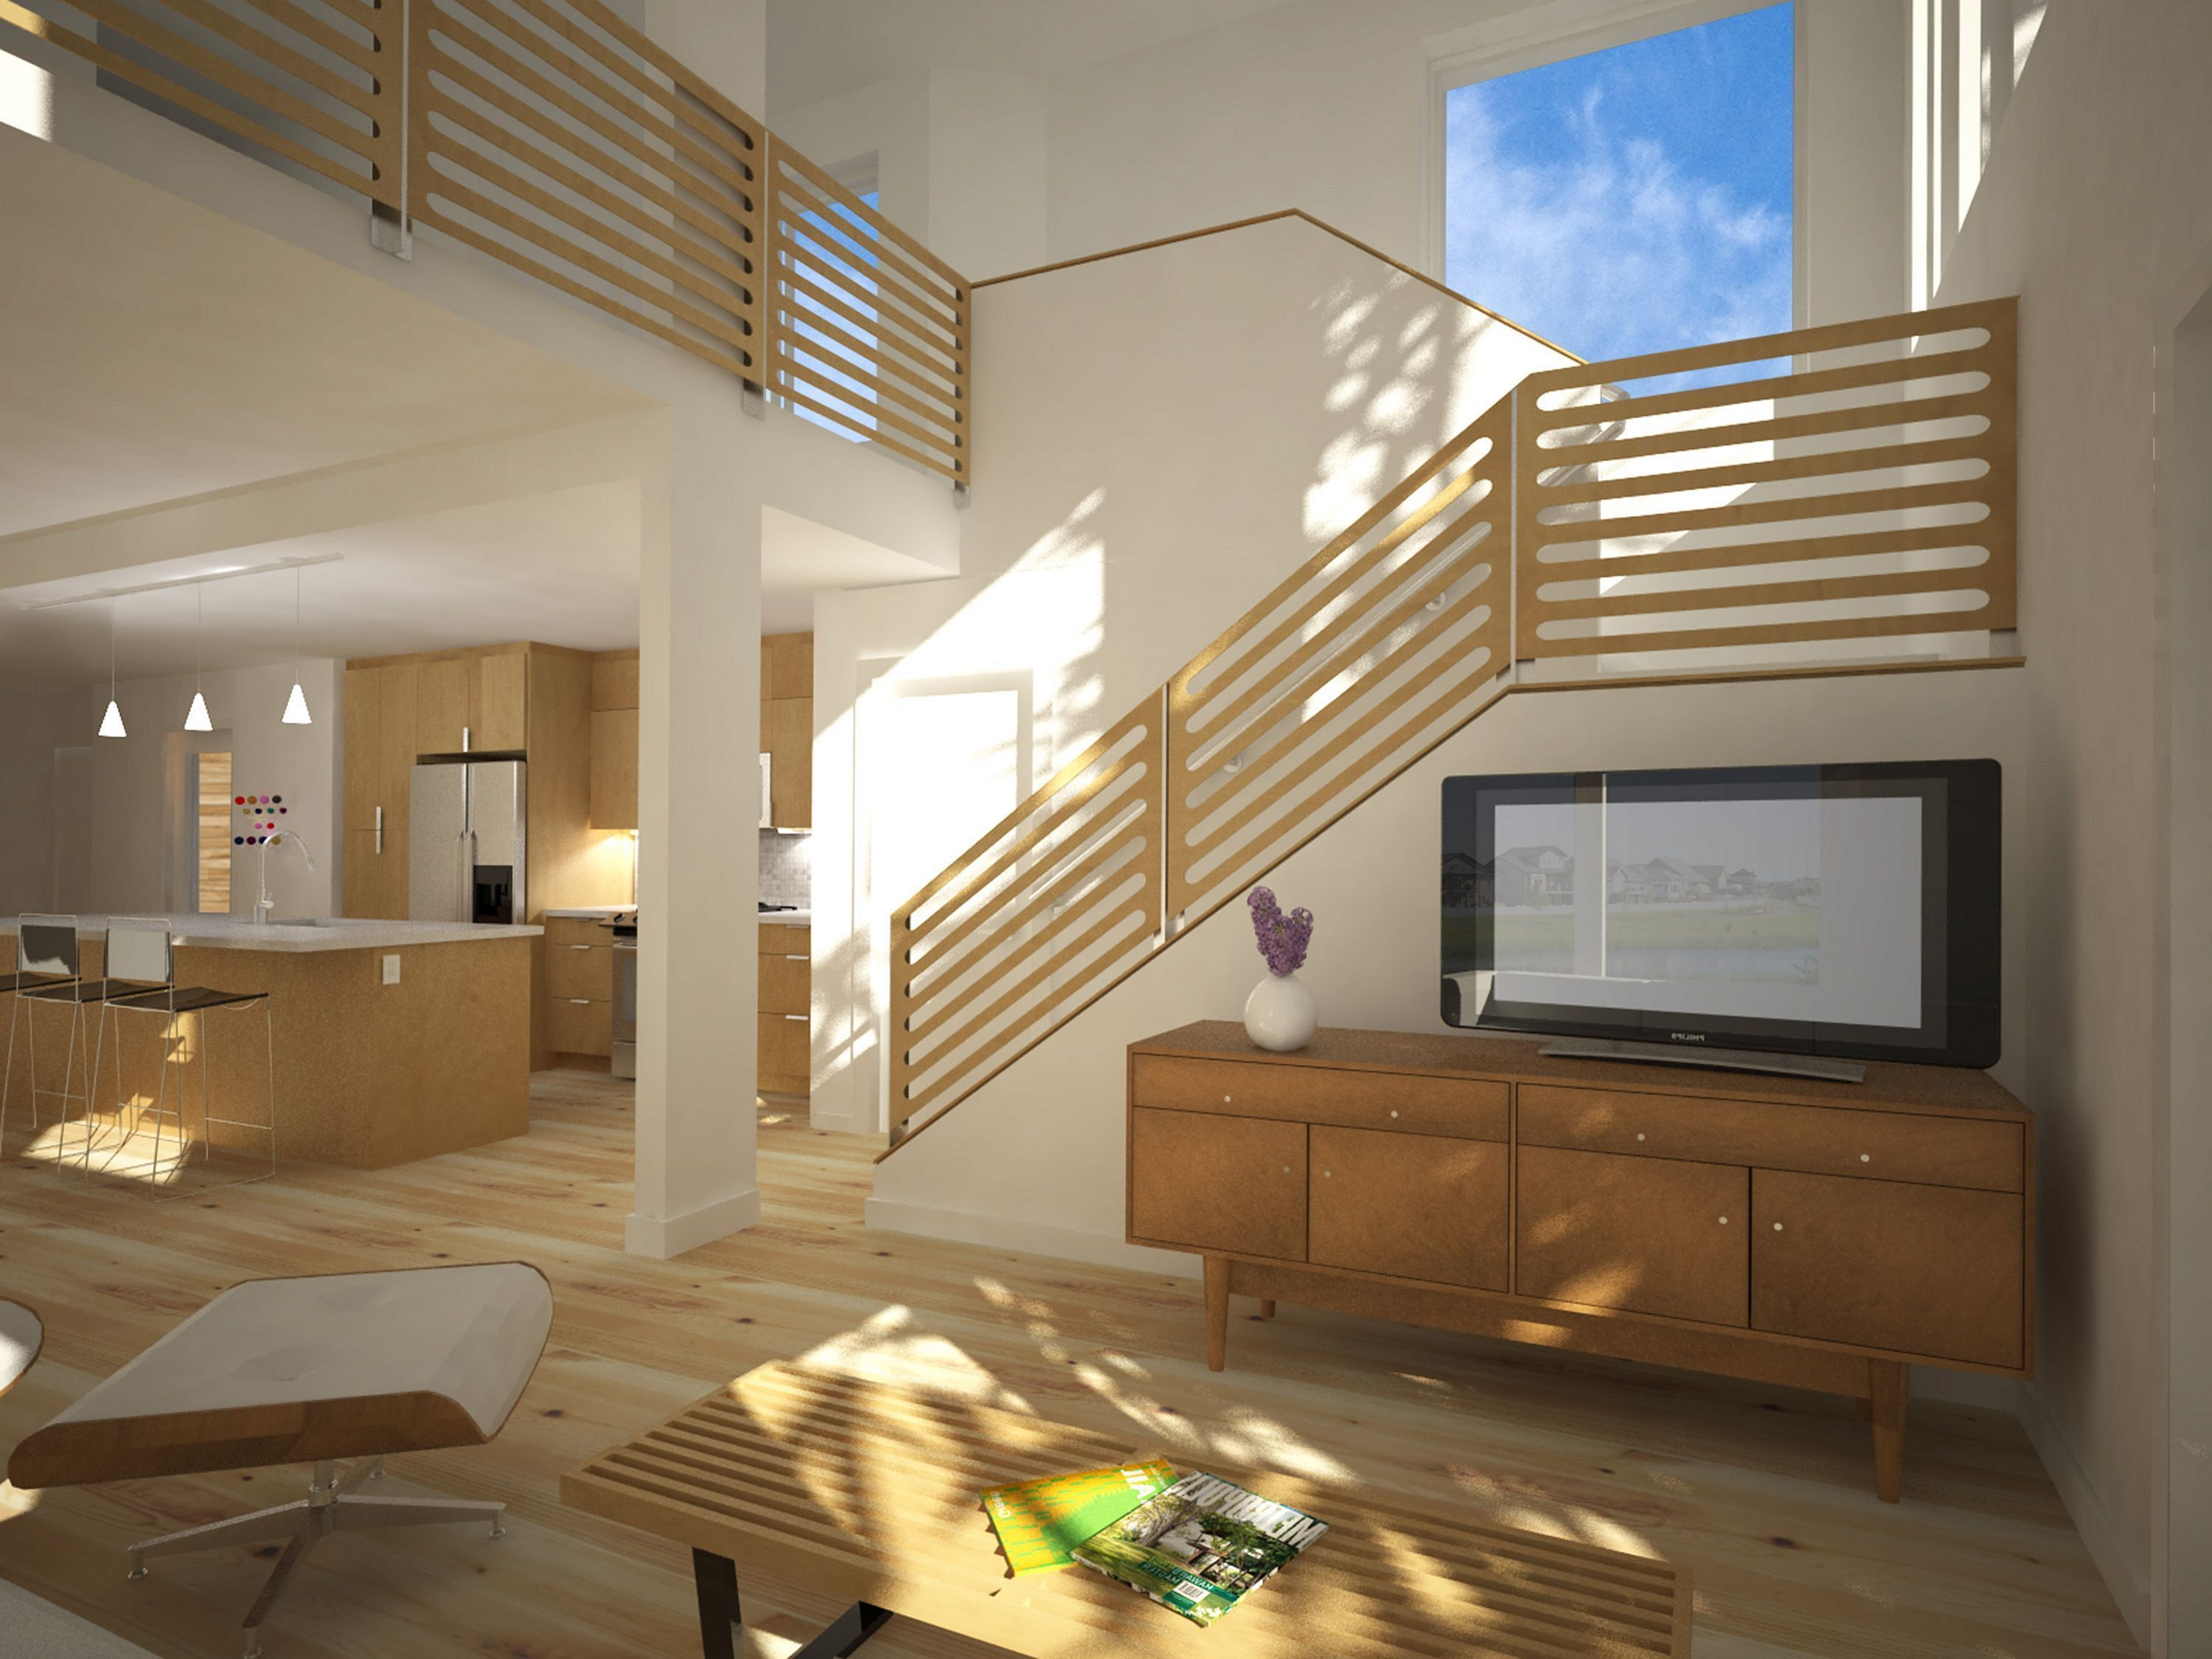 Phenomenon Amazing 25 Living Room Staircase Design For Elegant Room Ideas Http Stairs In Living Room House Interior Design Living Room Home Design Living Room #small #house #design #living #room